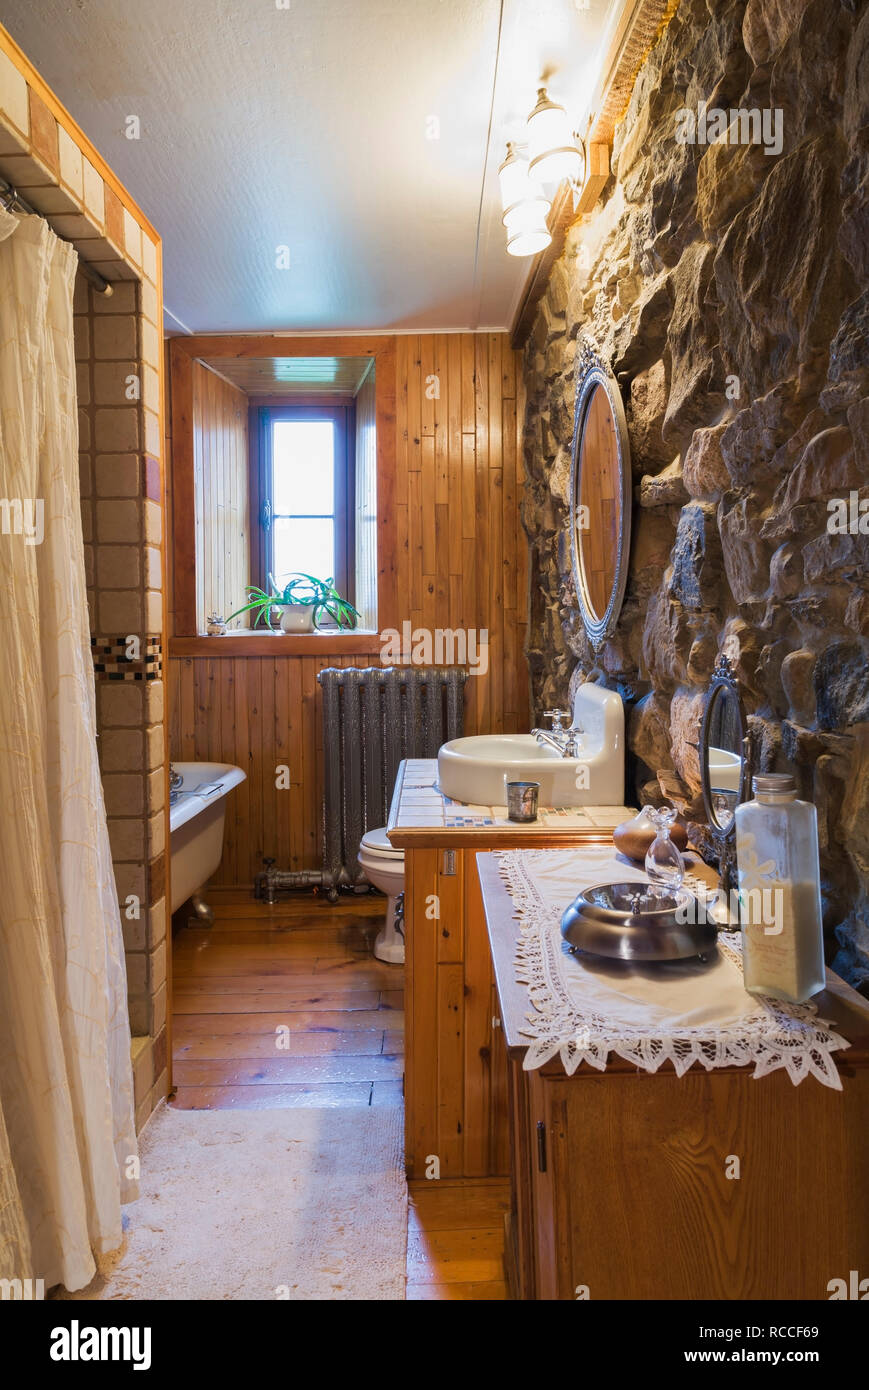 Main Bathroom With Claw Foot Bathtub And Ceramic Shower